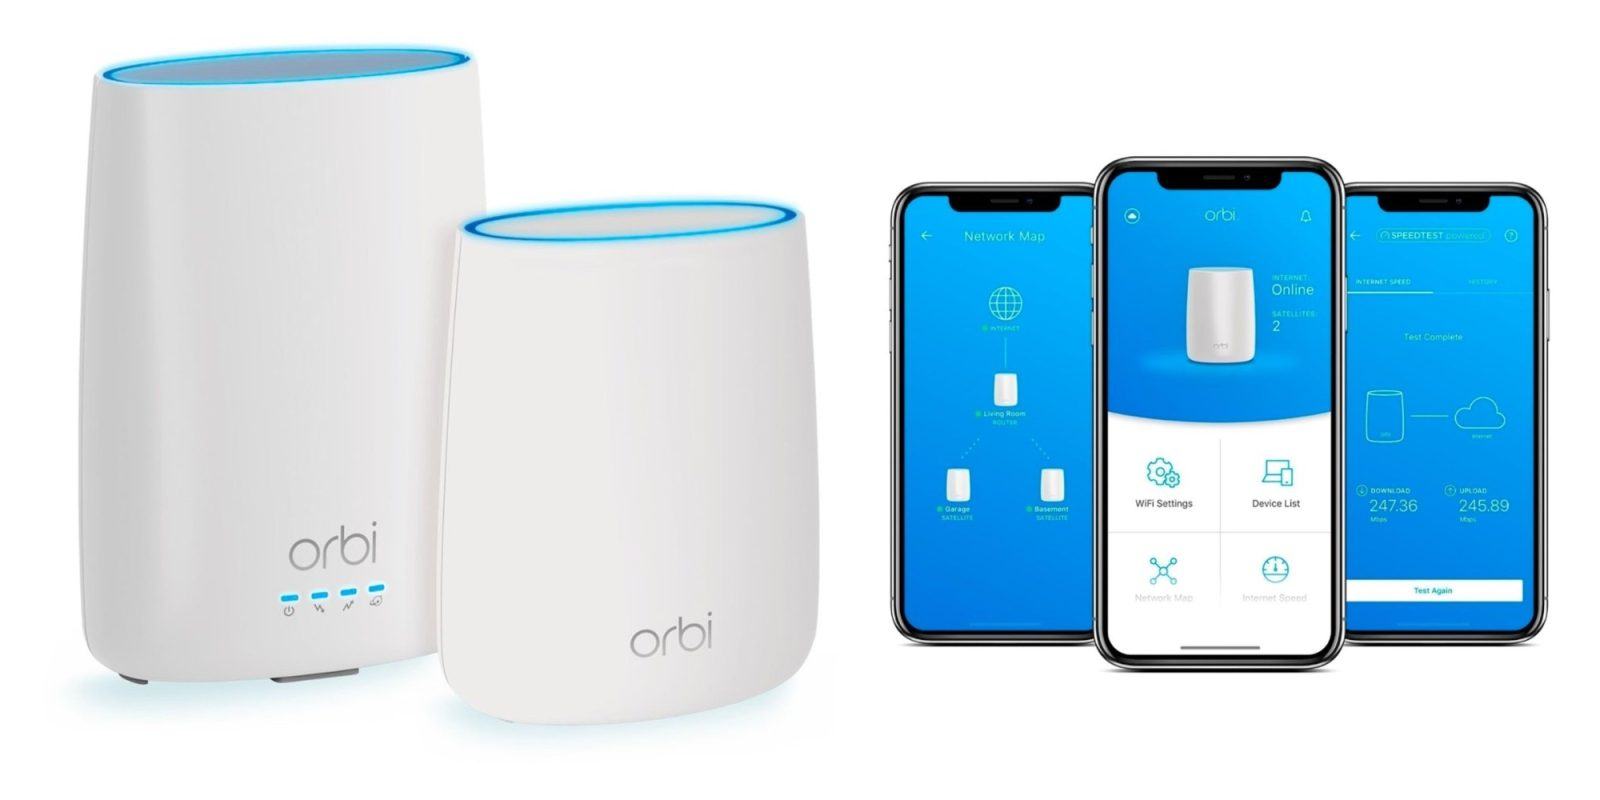 NETGEAR's Orbi Mesh 802.11ac Router Combo overhauls your network at $90 off